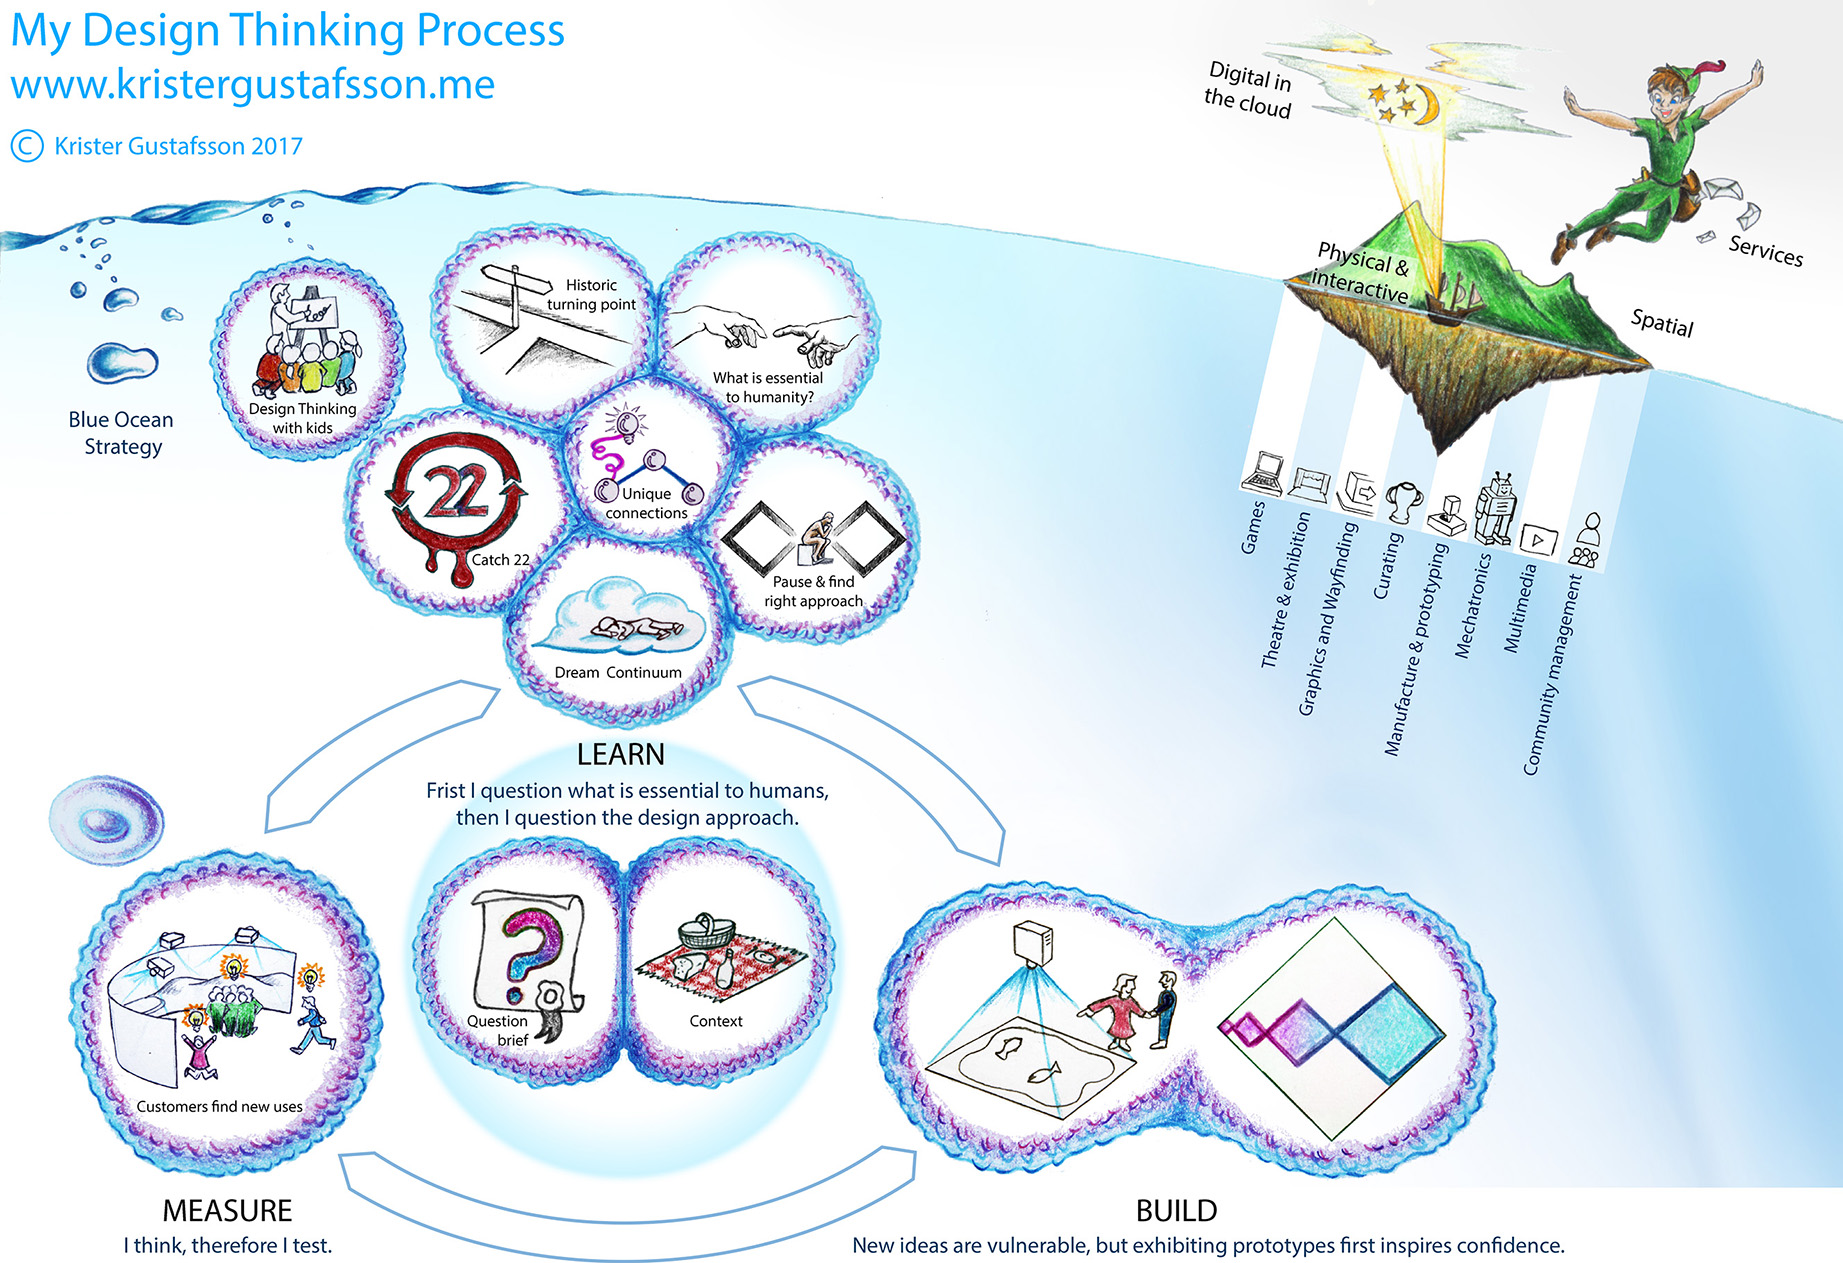 Krister Gustafsson Design Thinking Process 23 Jan 2018.jpg